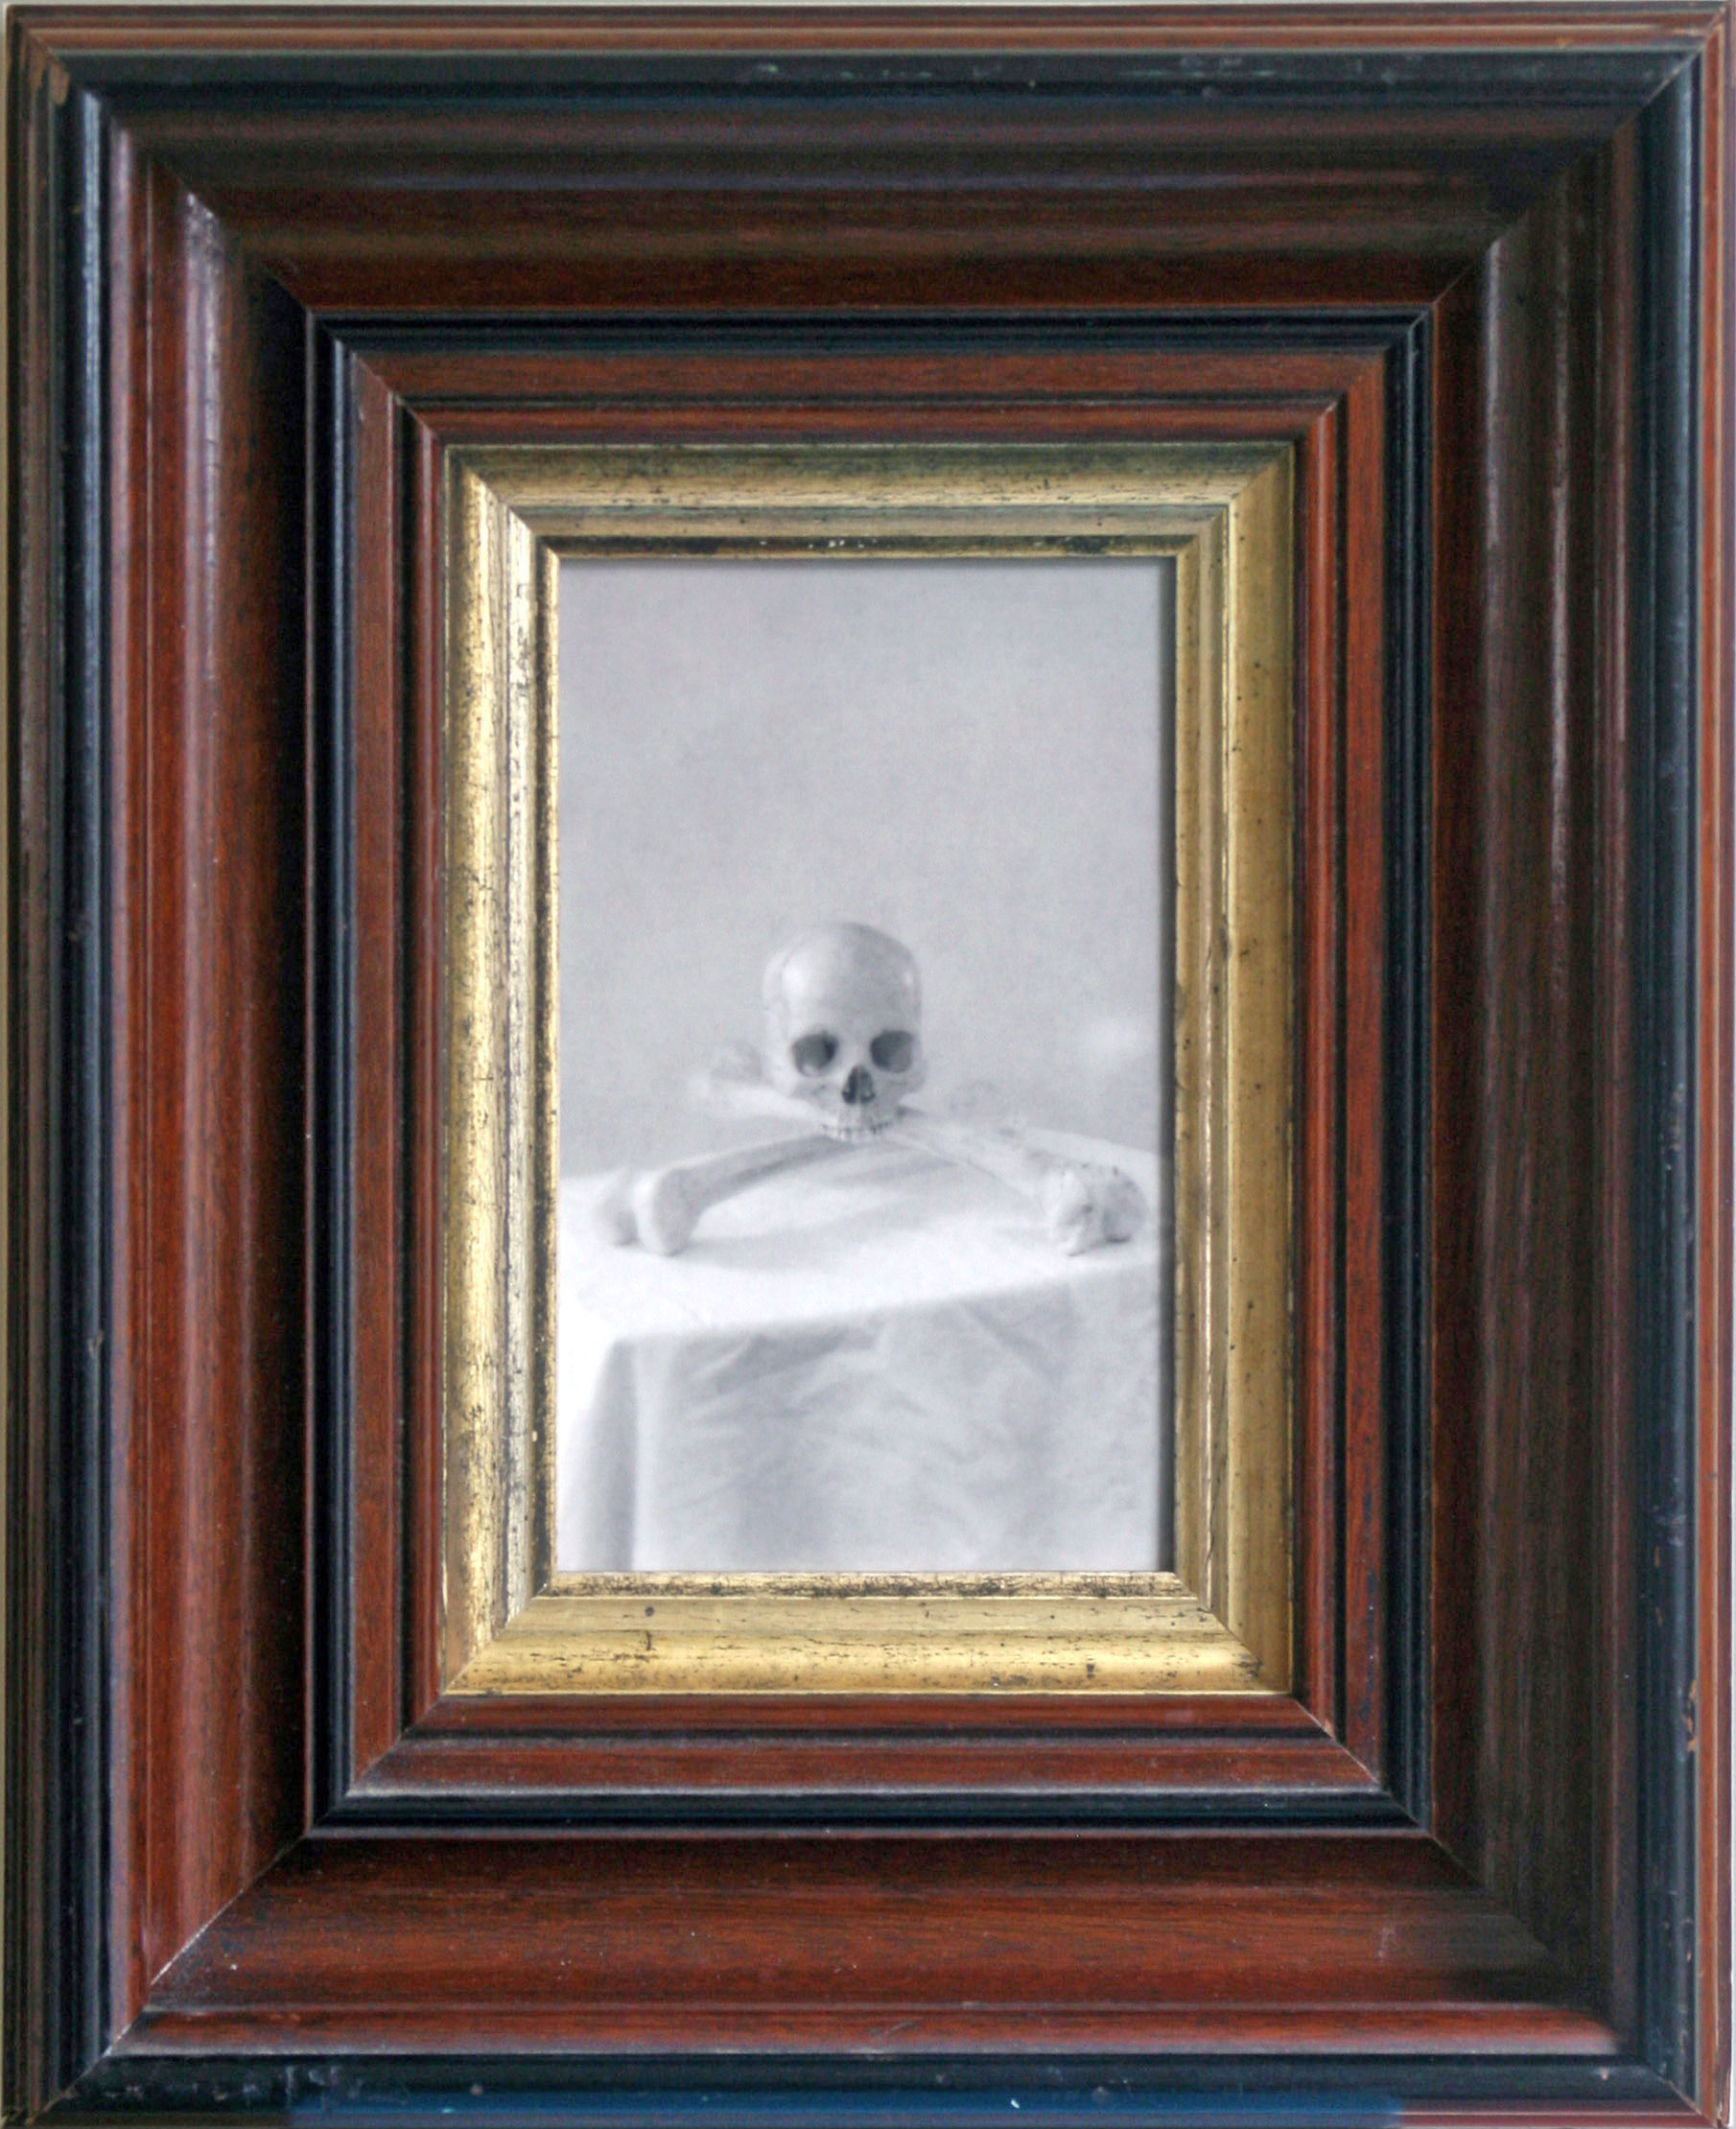 Skull and Crossbones                 Silver gelatin print, antique frame